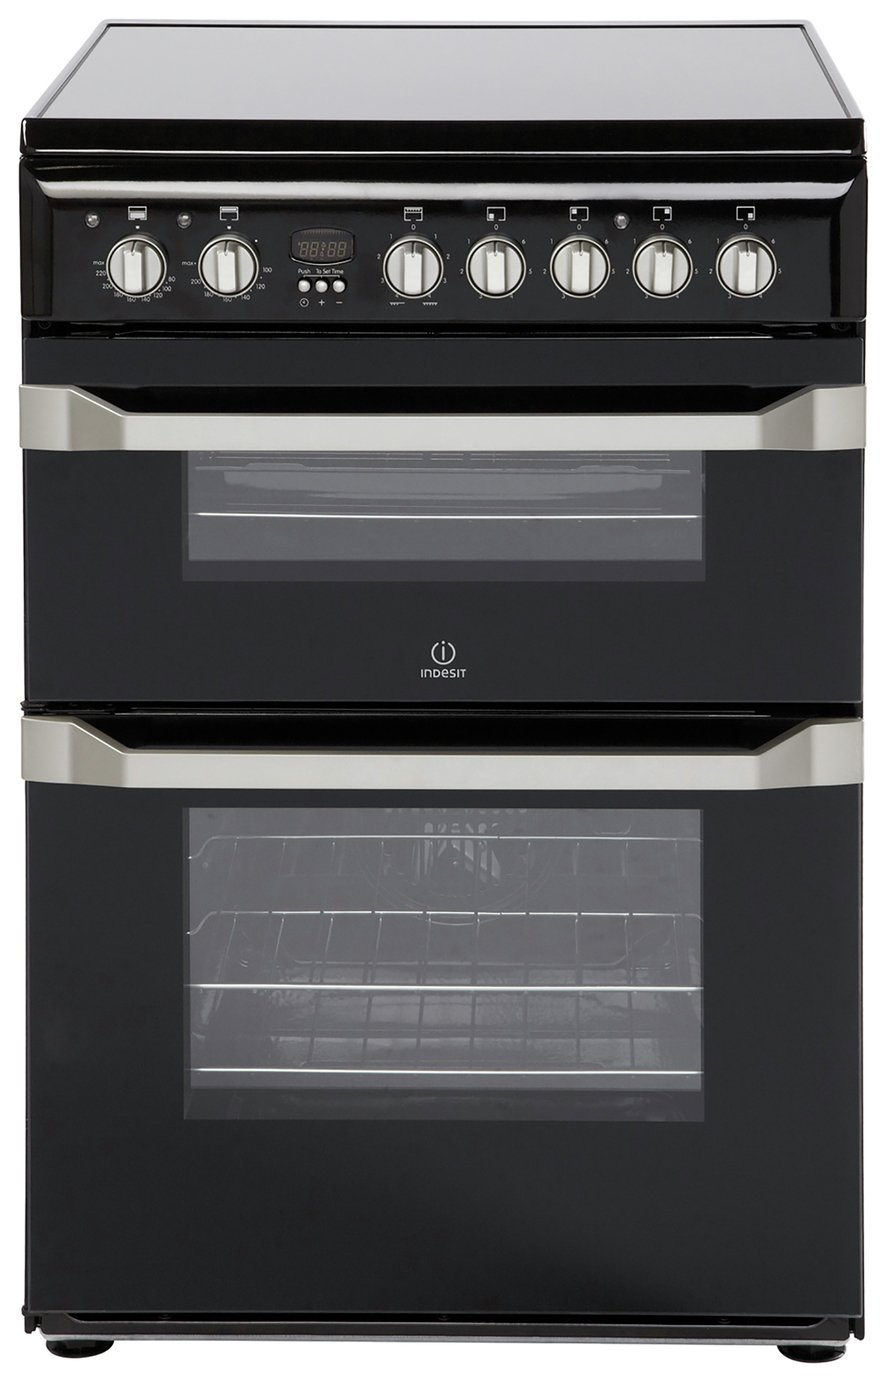 Indesit ID60C2 60cm Twin Cavity Electric Cooker - Black